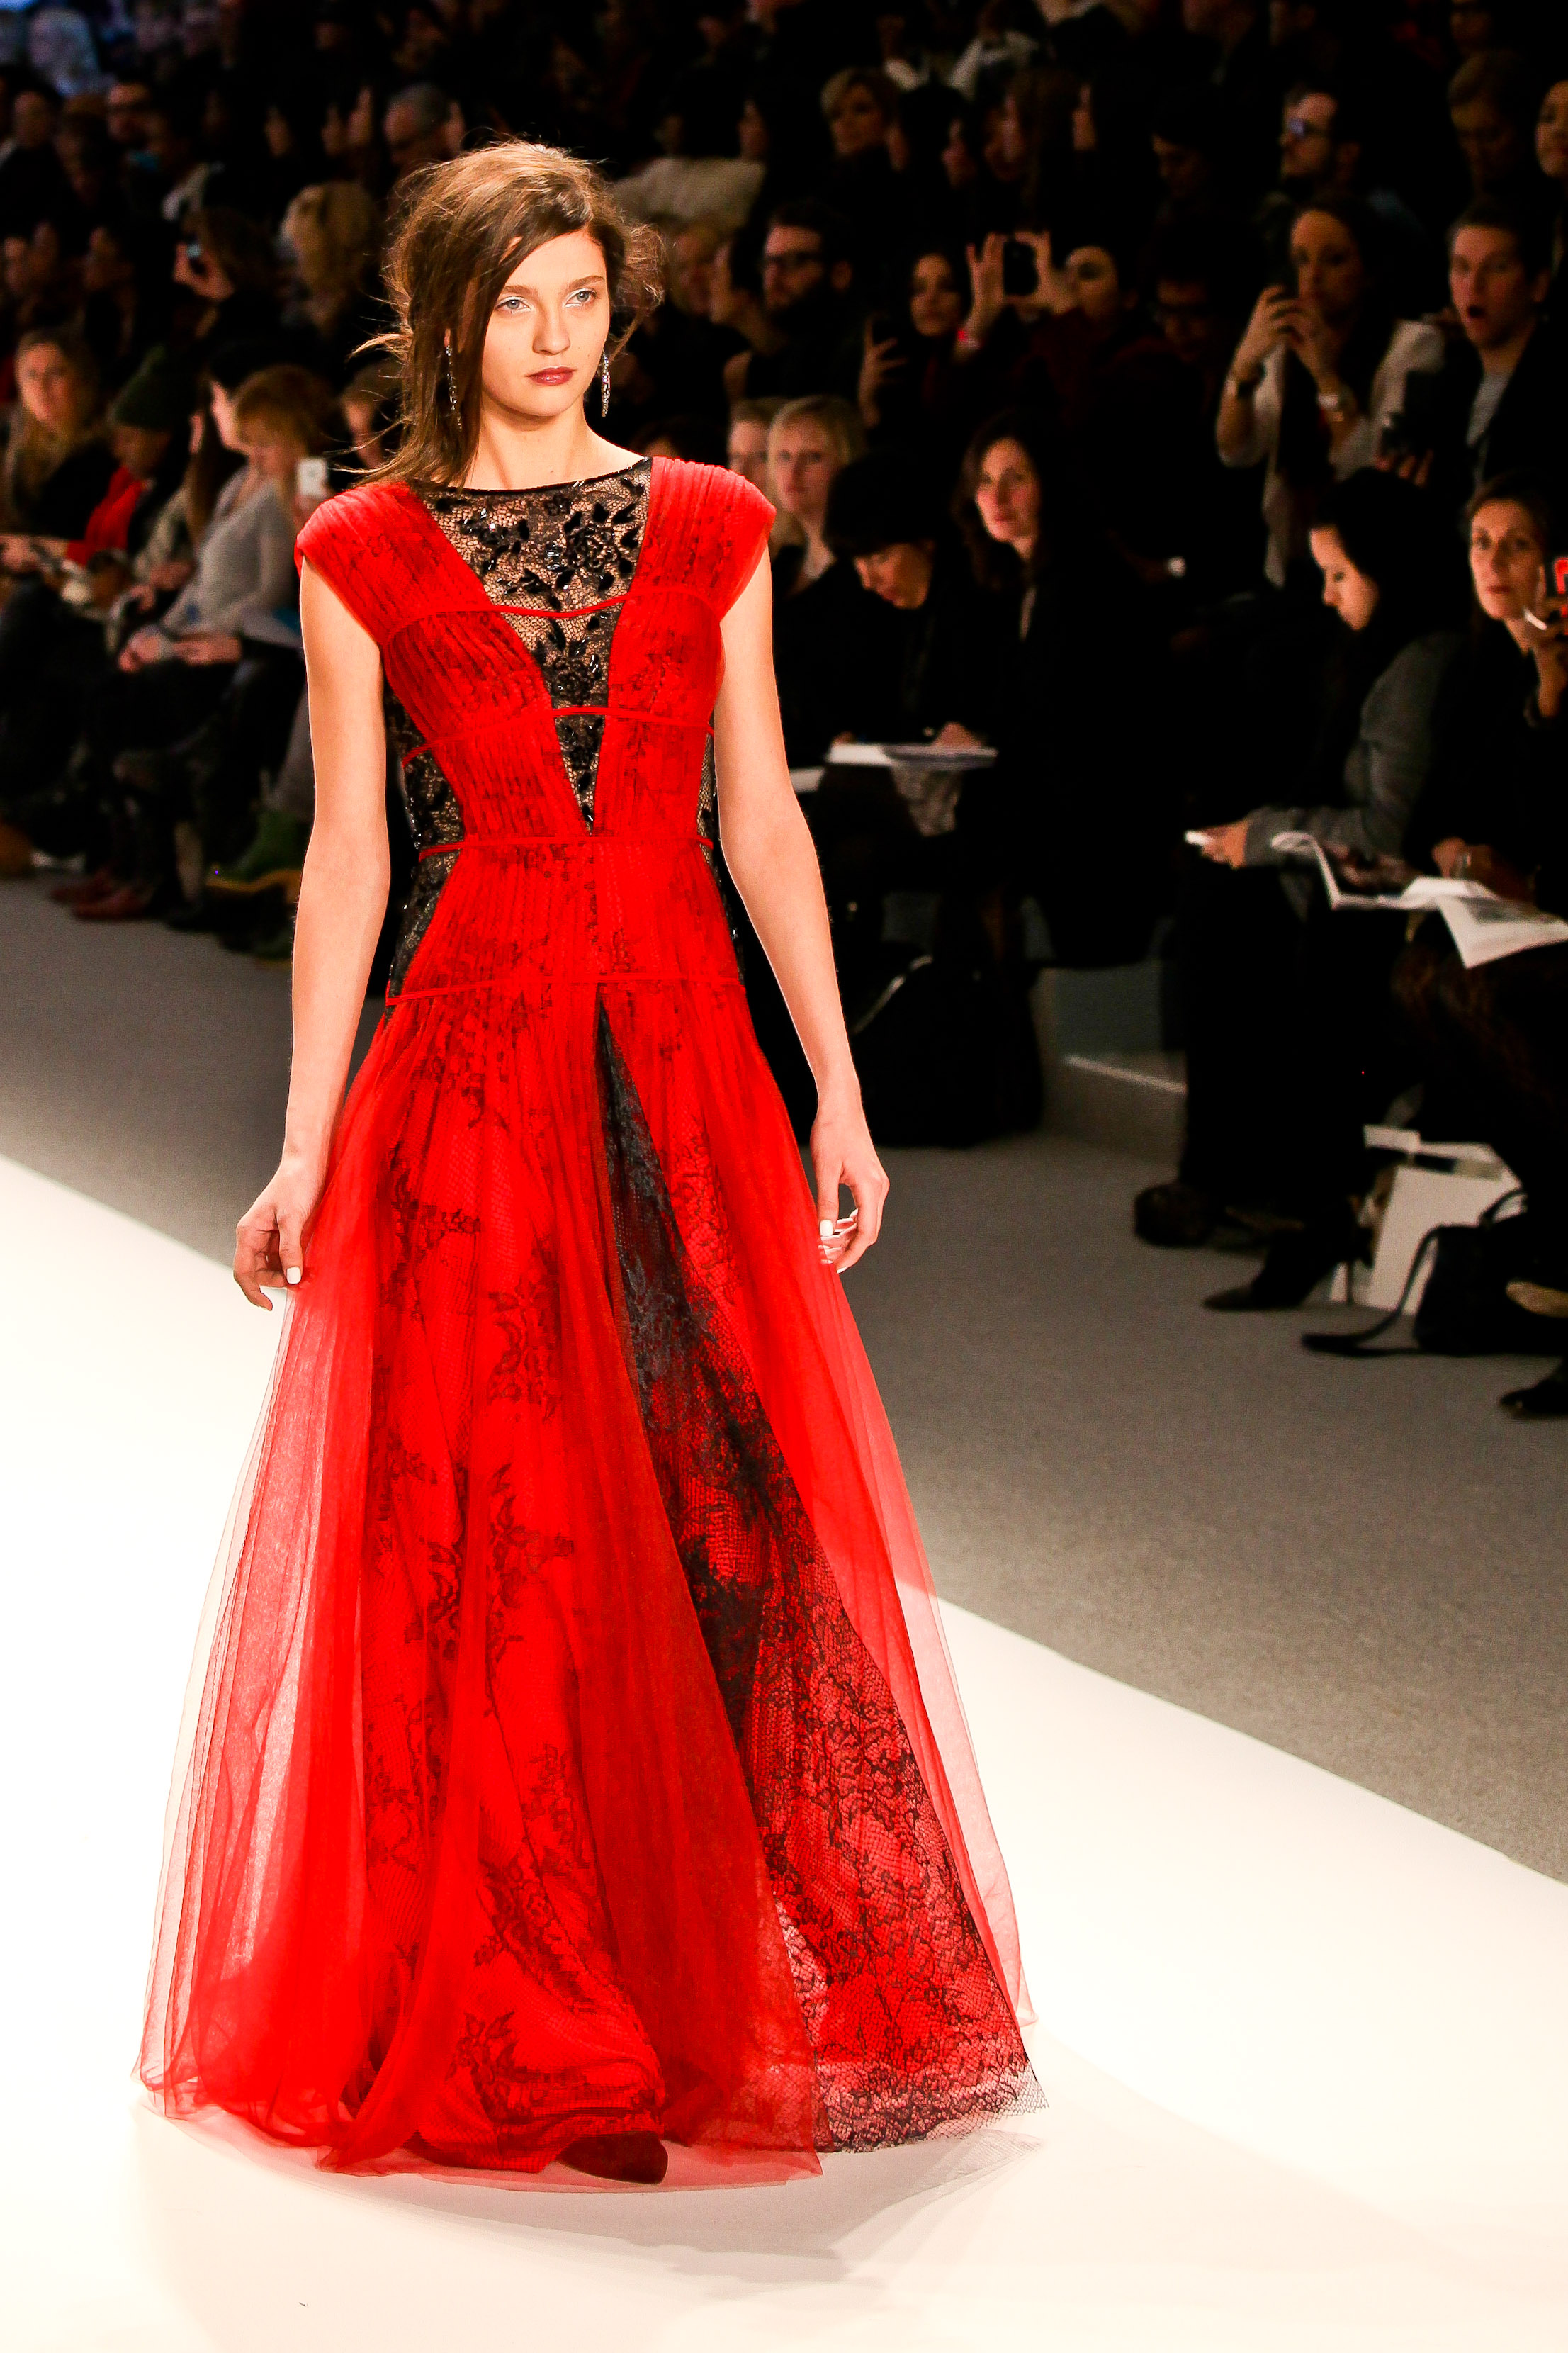 NEW YORK - FEBRUARY 07:A model walks the runway at the  Tadashi Shoji  Fall 2013 collection Mercedes-Benz Fashion Week in New York on February 07 2013.